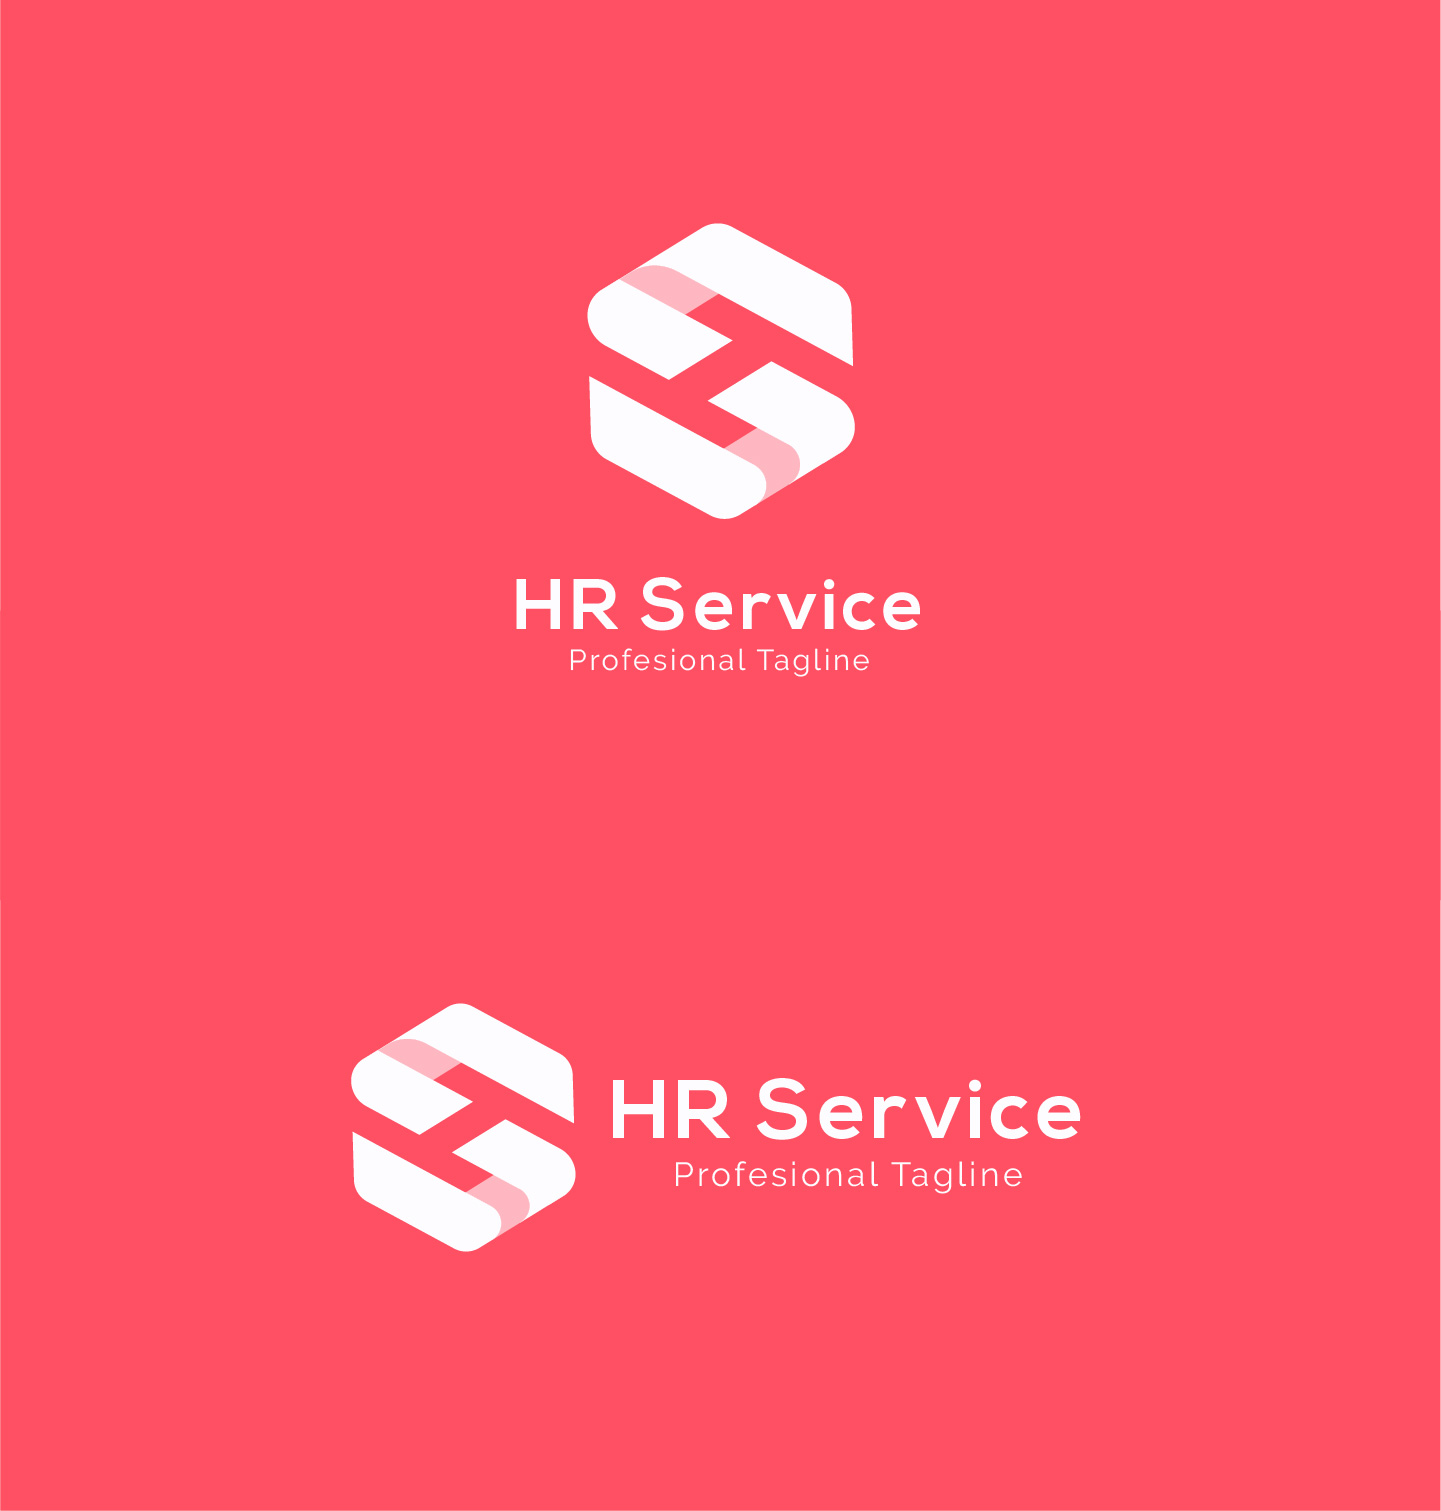 HR Service - H S Letter Logo example image 4